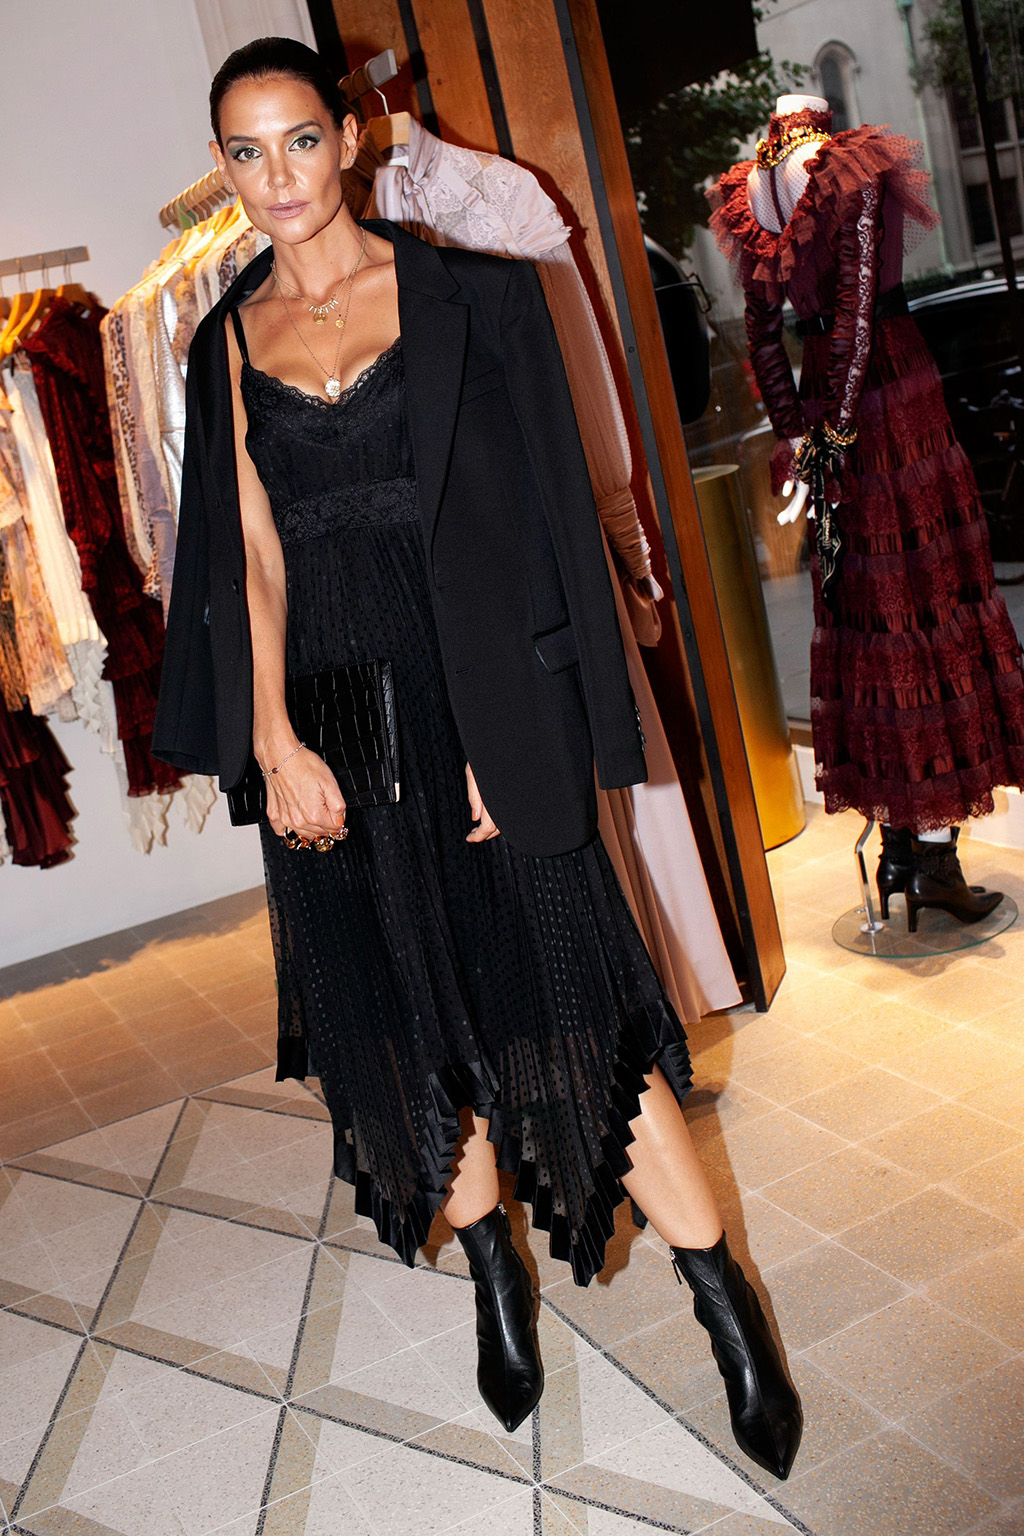 Katie Holmes, lace dress, black booties, leather boots, legs, all black outfit, Zimmermann Dinner and Store Party, New York Fashion Week, USA - 04 Sep 2019Wearing Zimmermann